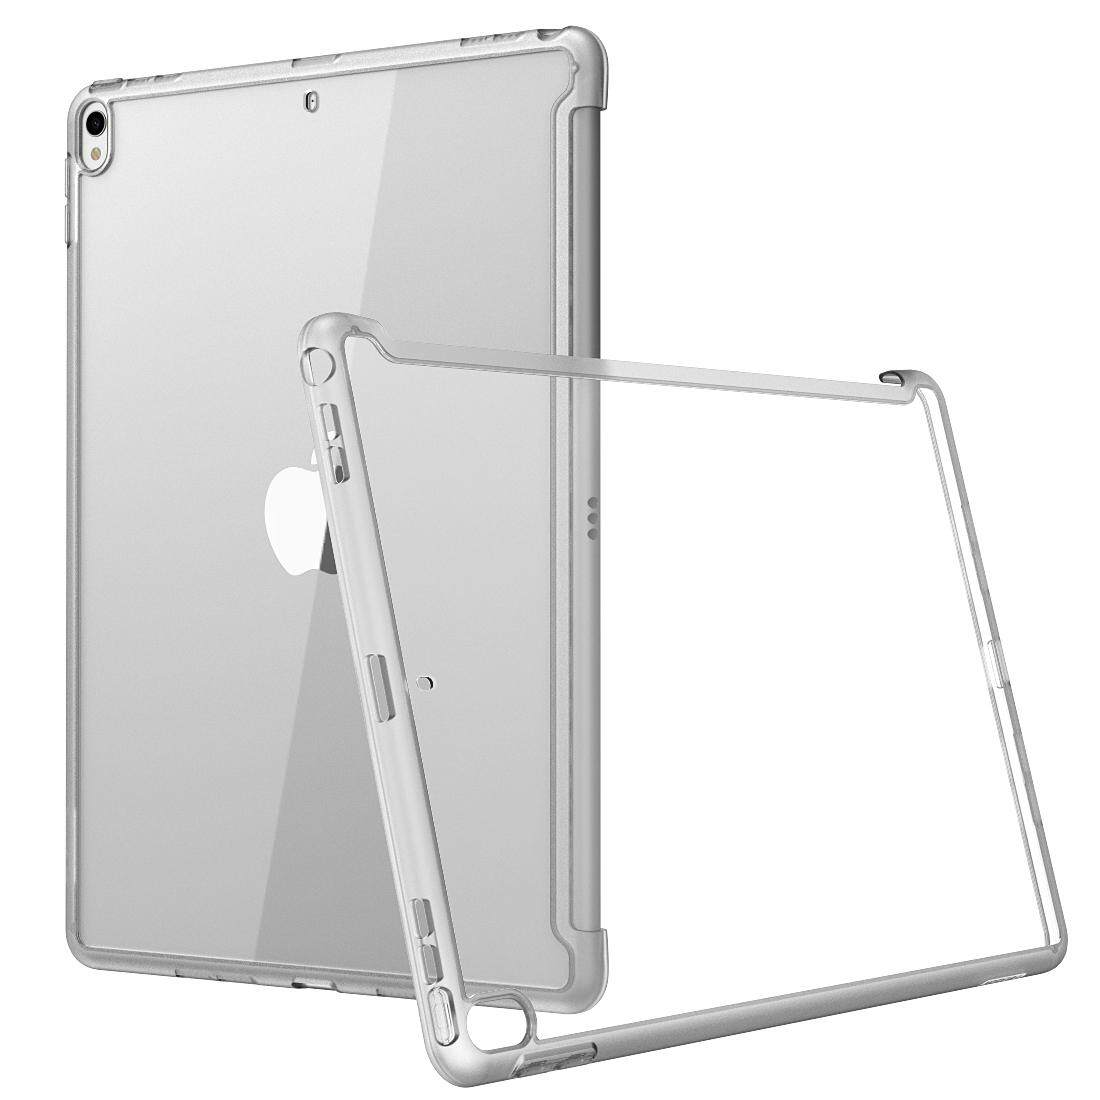 Giá For iPad Air 3 Case 10.5 2019 (3rd Generation), iPad Pro 10.5 2017 Case  i-Blason [Compatible with Official Smart Cover and Smart Keyboard] Clear Hybrid Cover